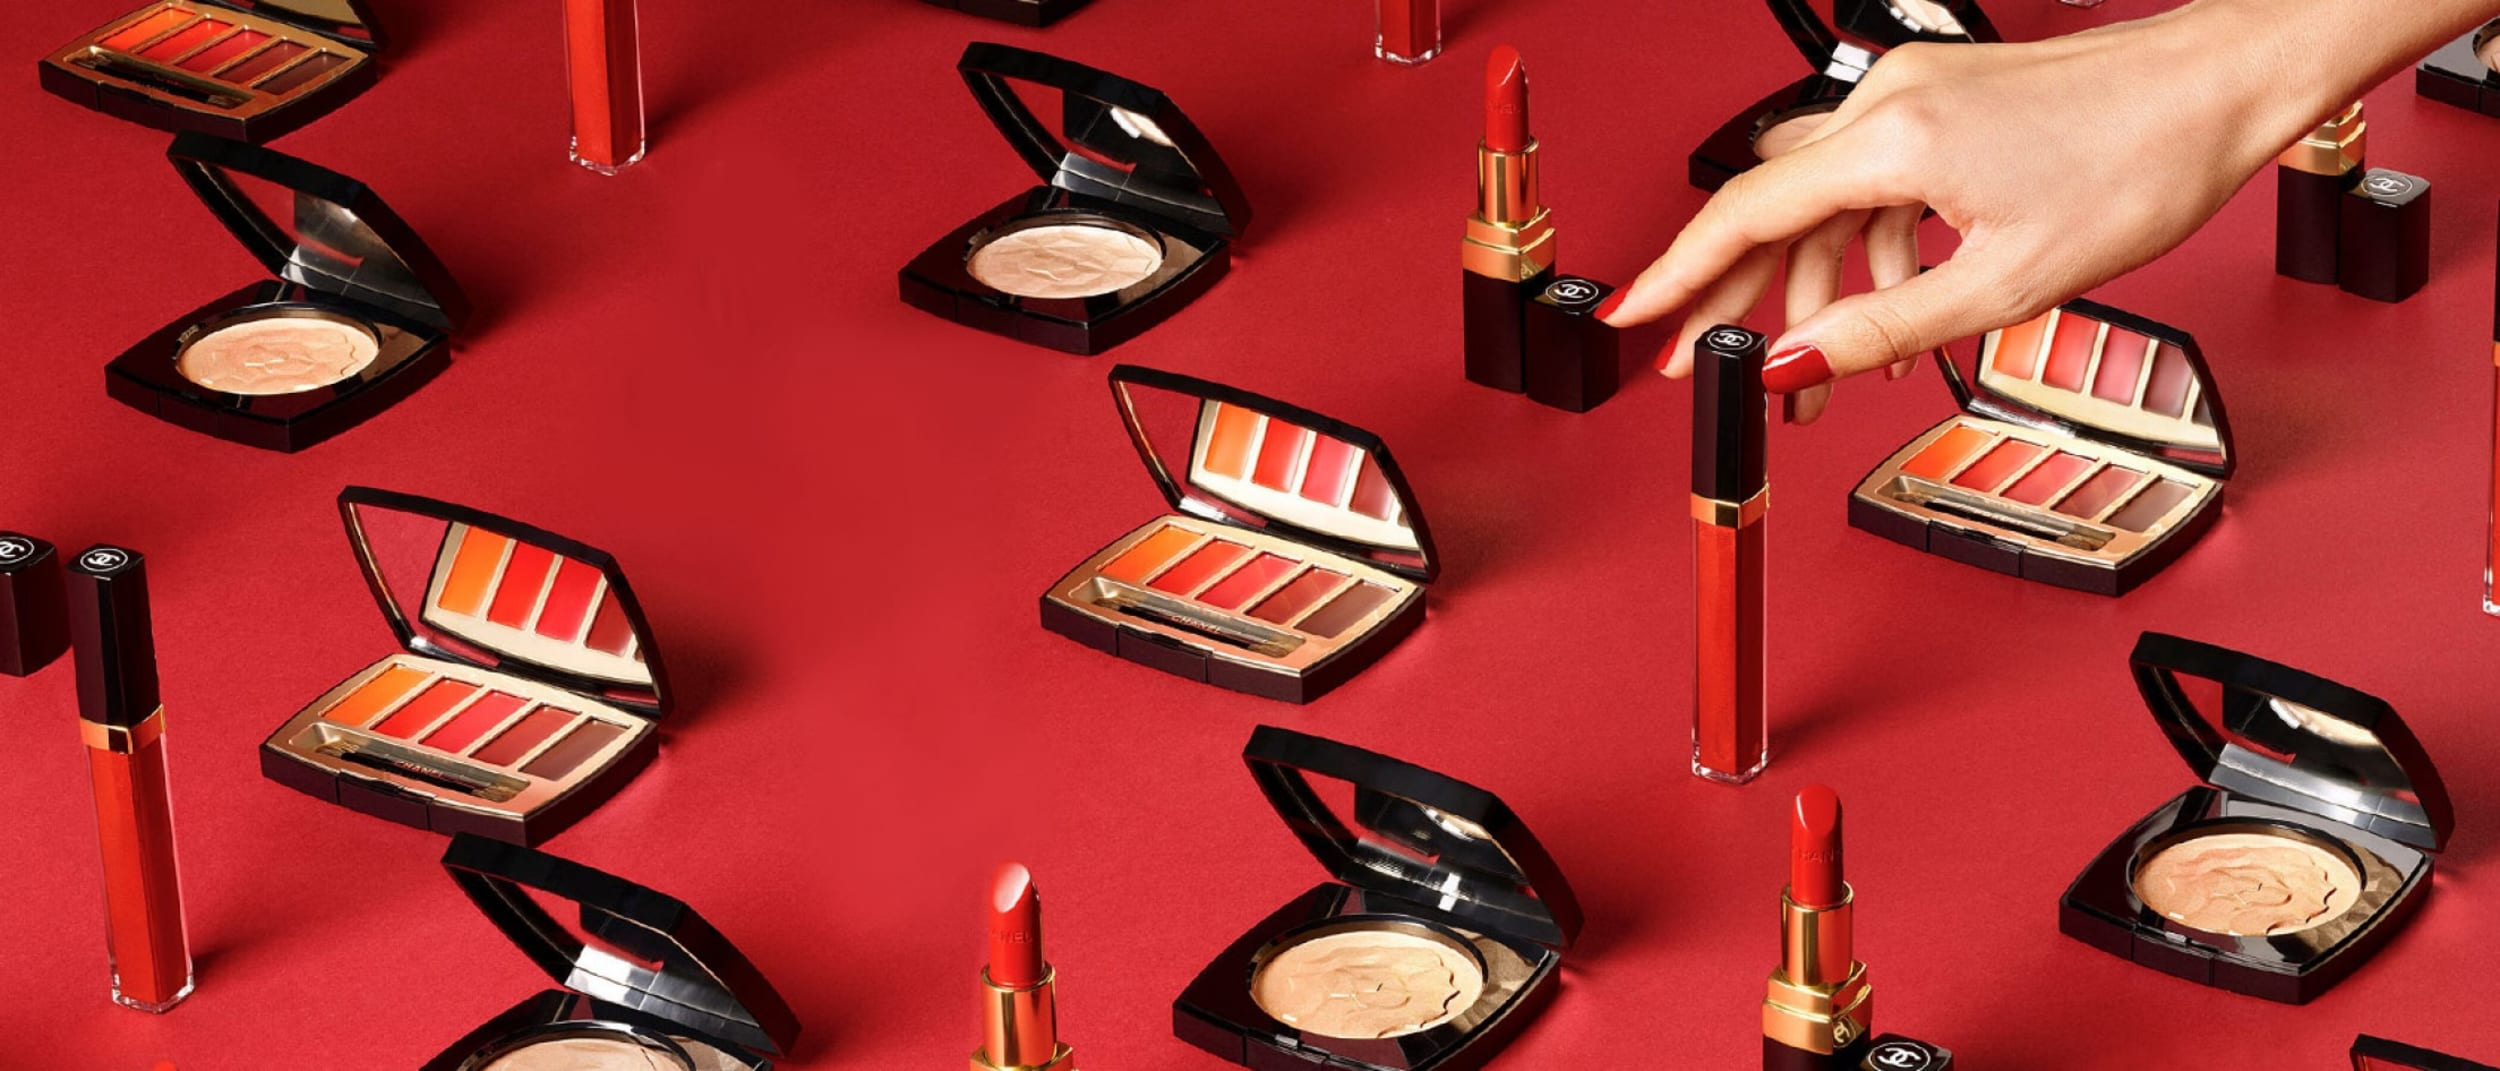 Event - Beauty moments at Myer